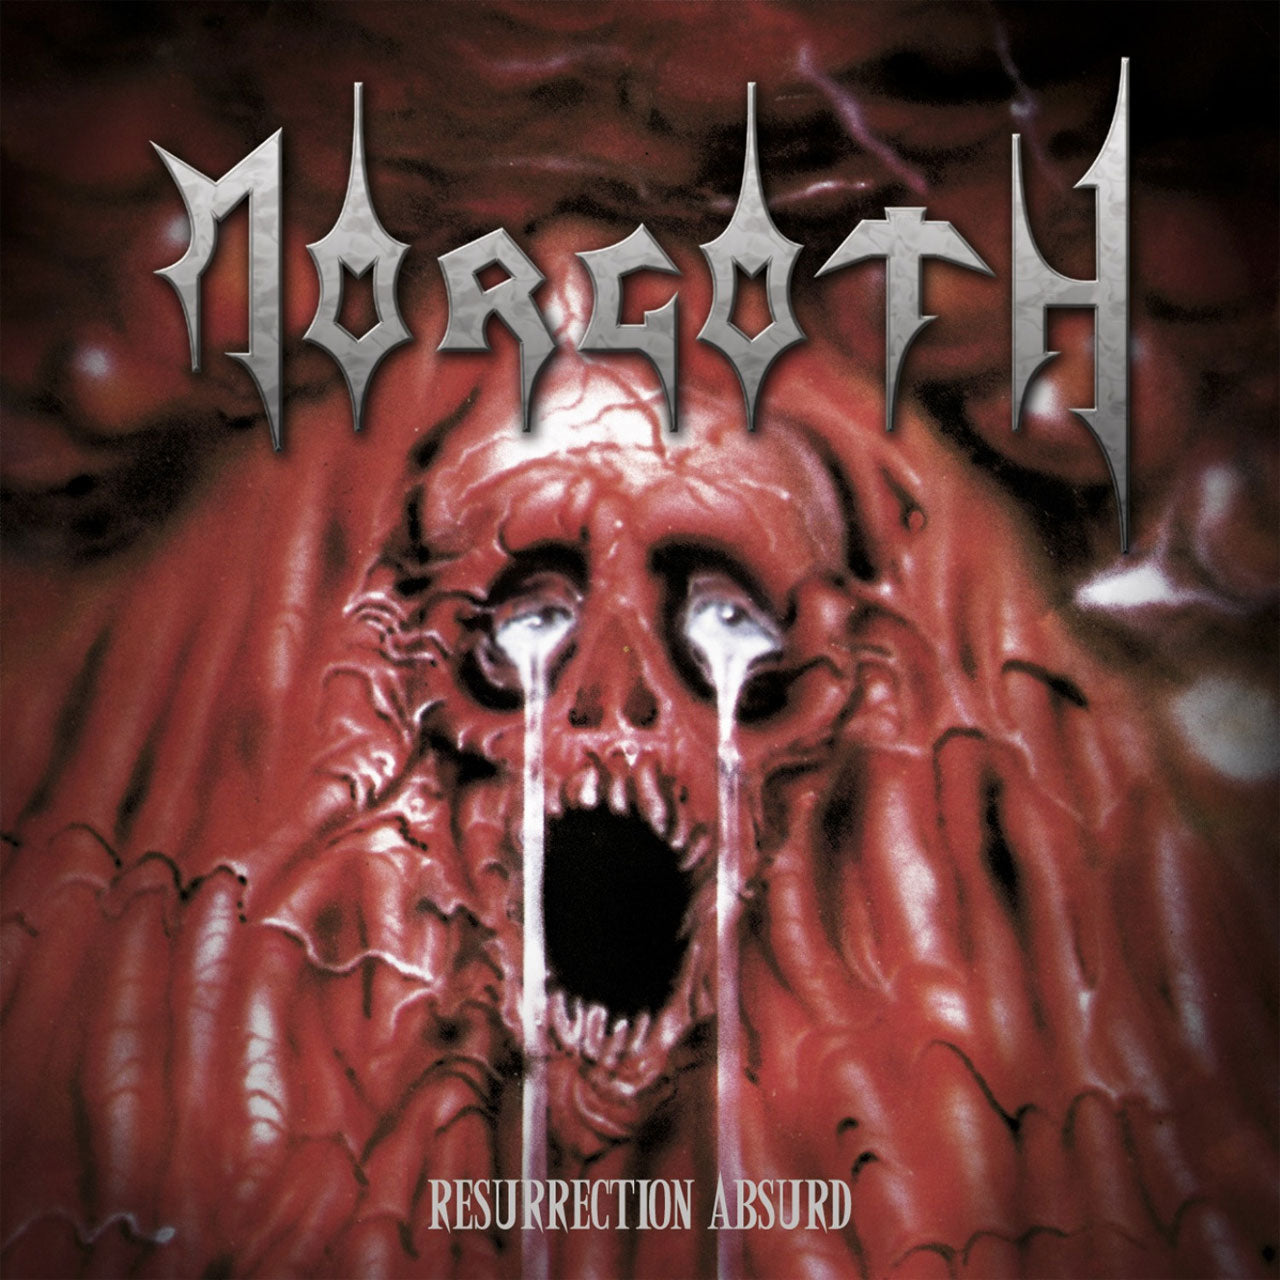 Morgoth - Resurrection Absurd / The Eternal Fall (2011 Reissue) (CD)